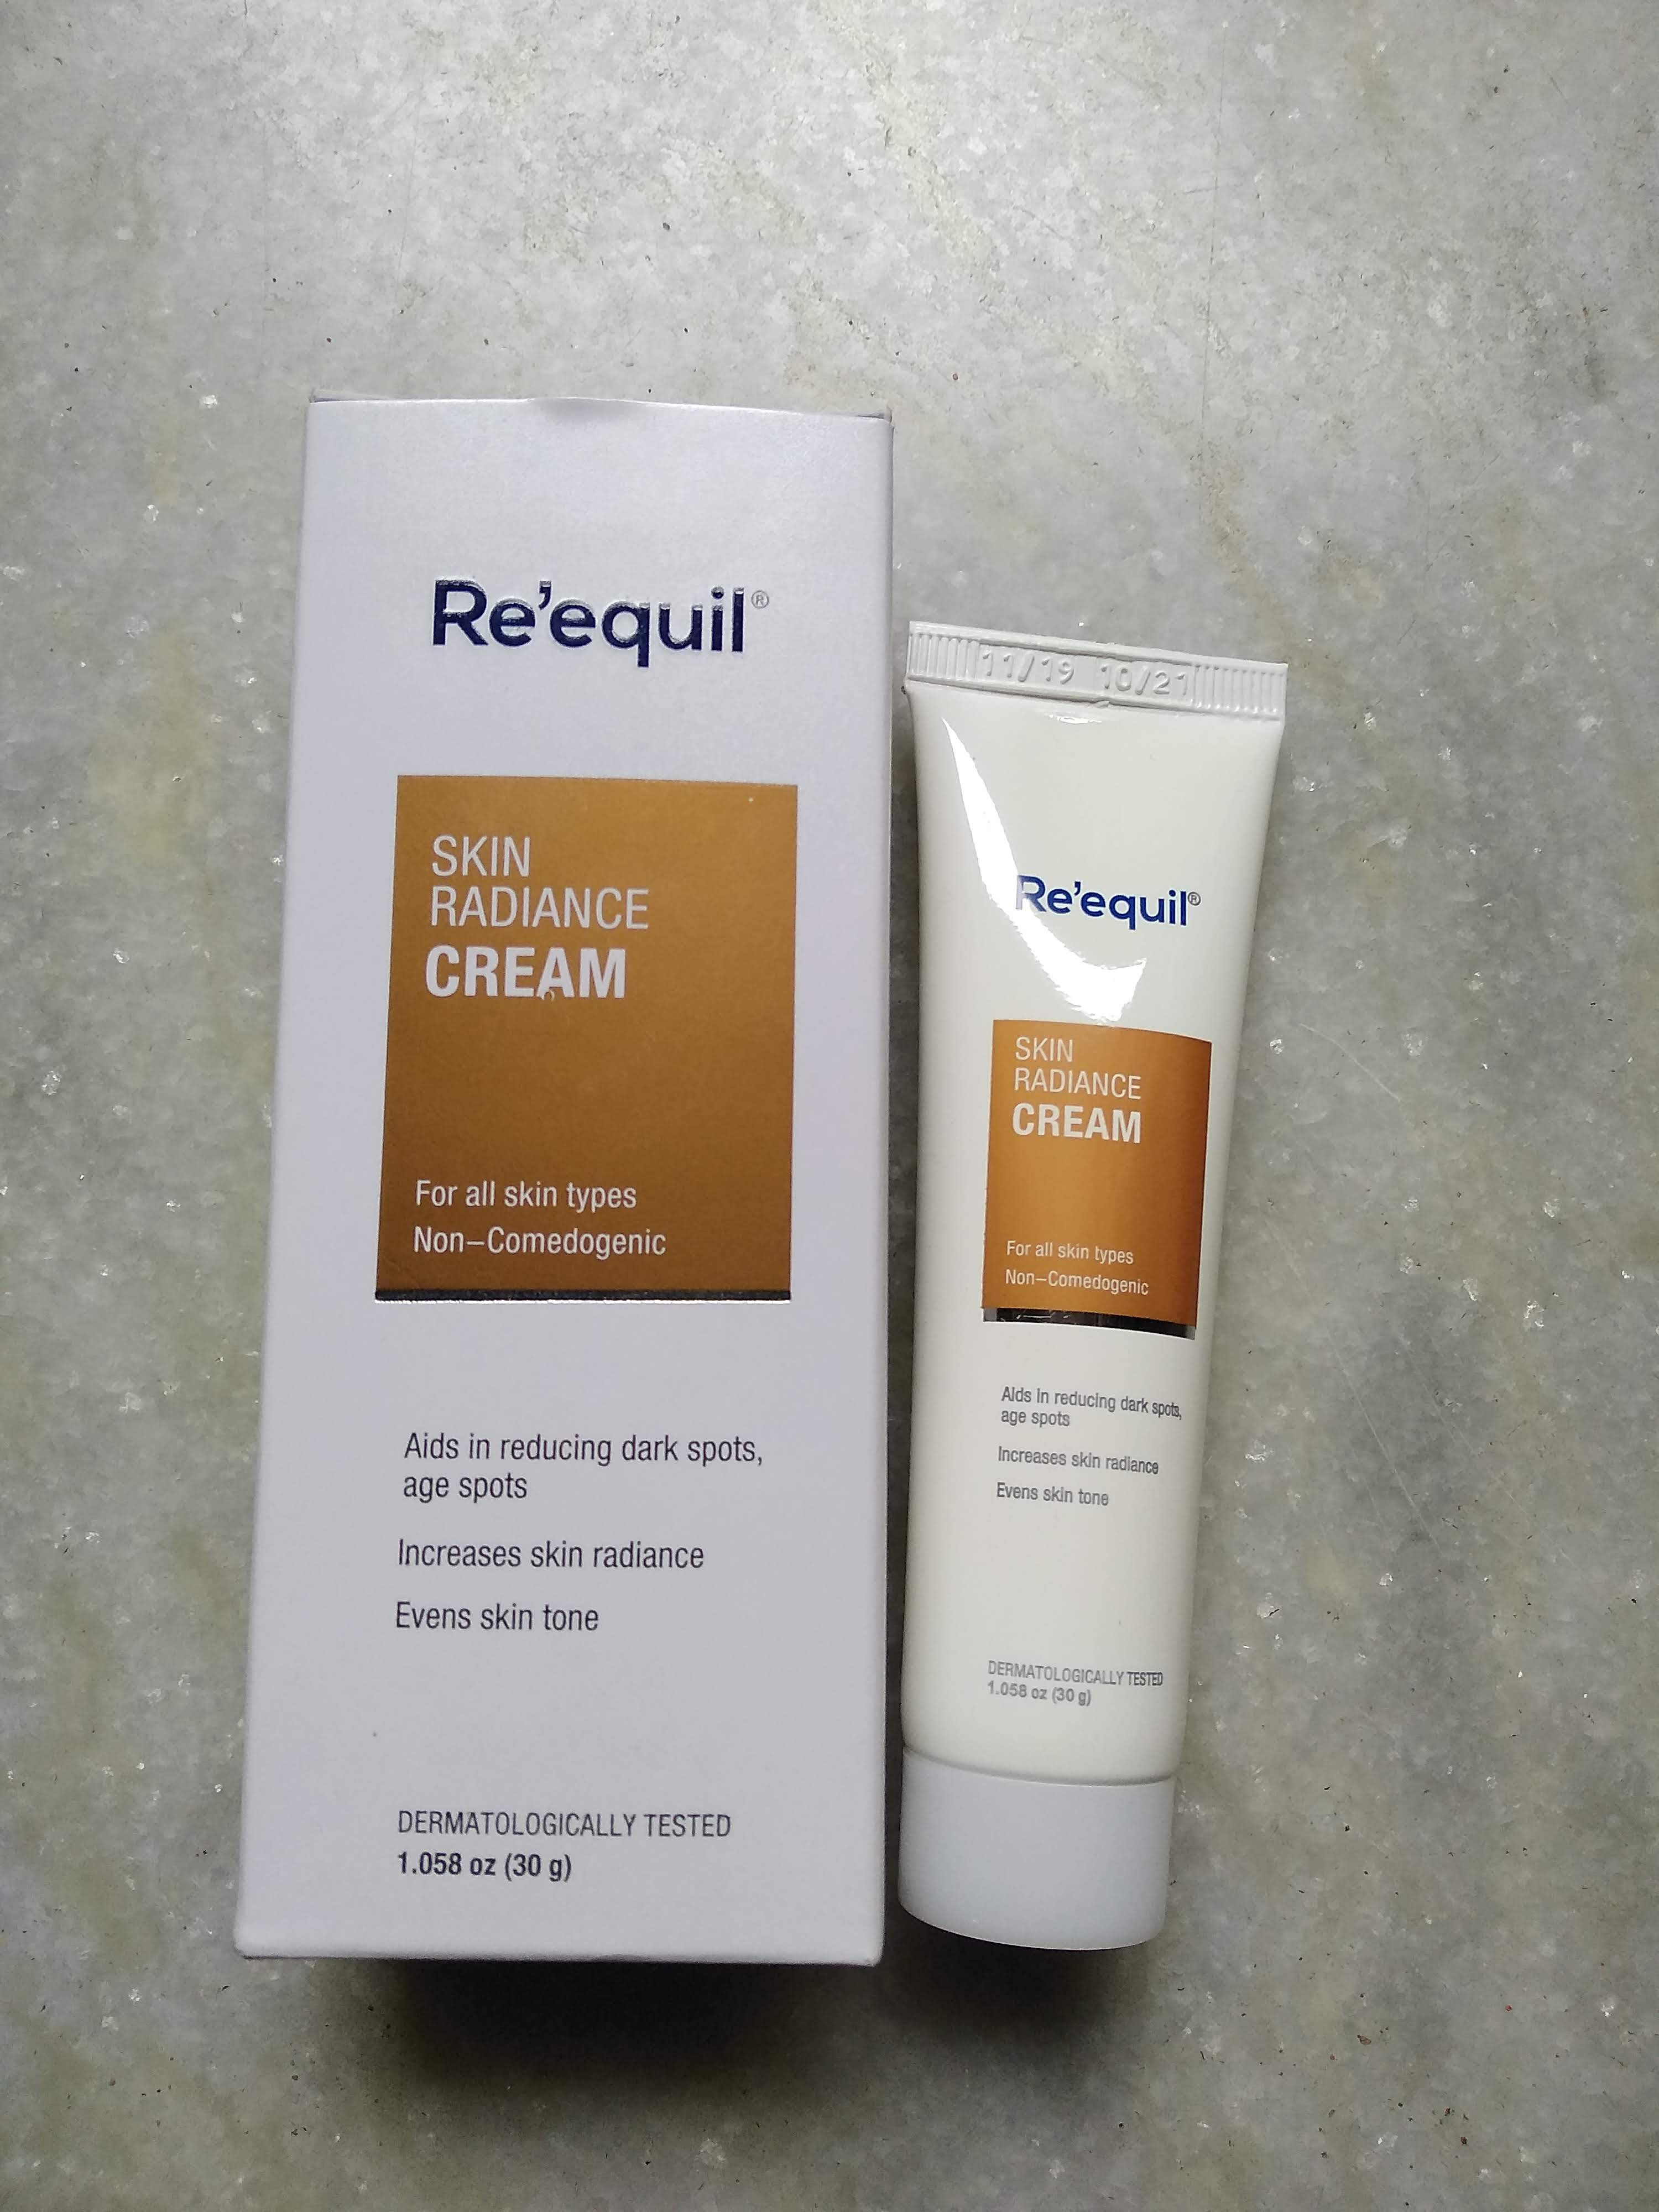 Re'equil Skin Radiance Cream-One of my favourite-By payel123